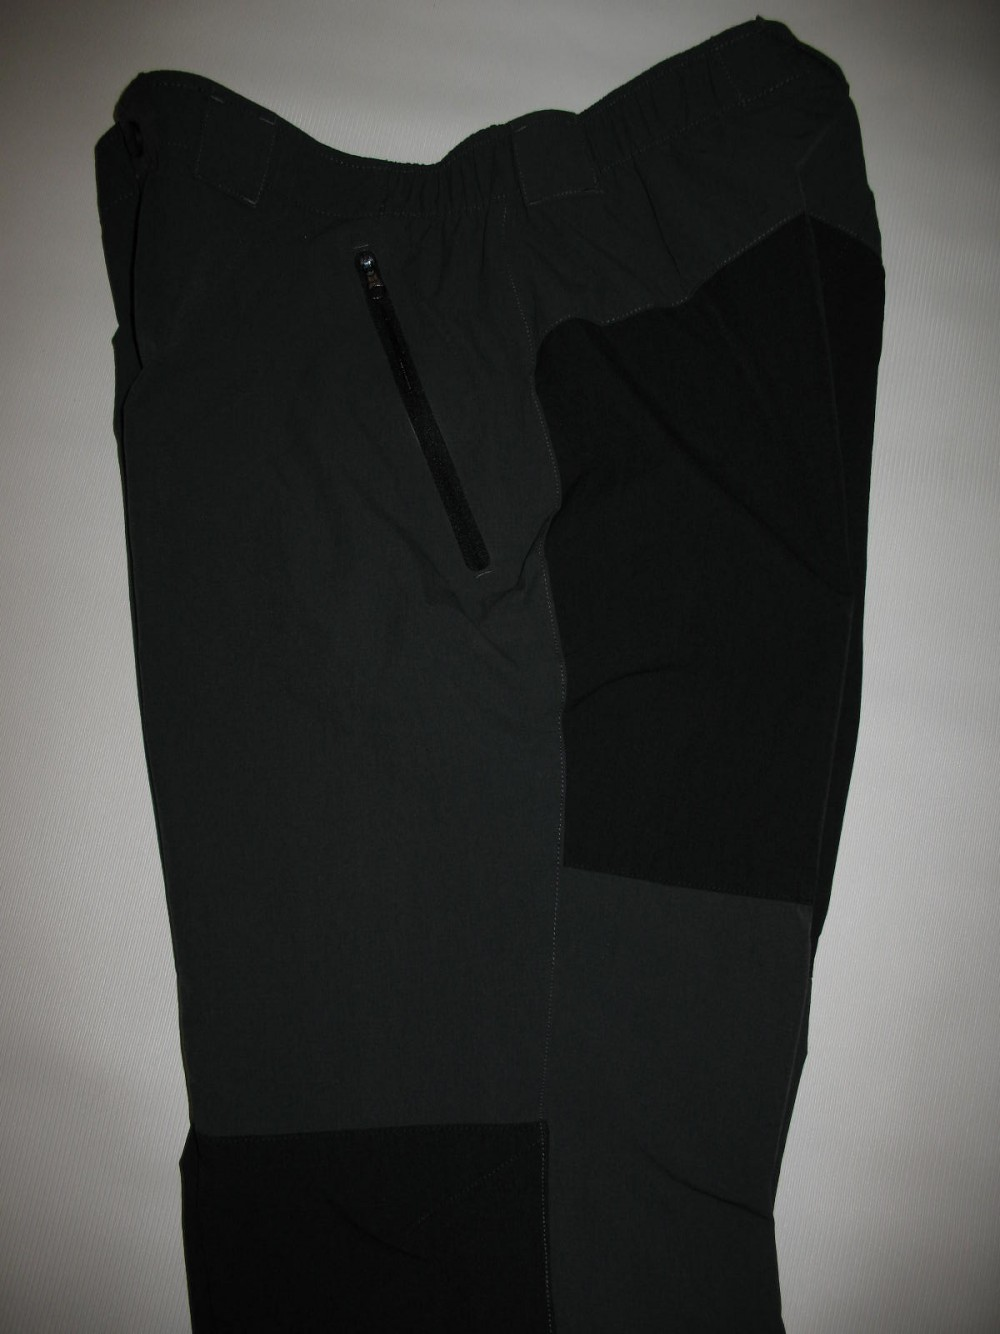 Штаны QUECHUA panther softshell pants (размер 48-M/L) - 6